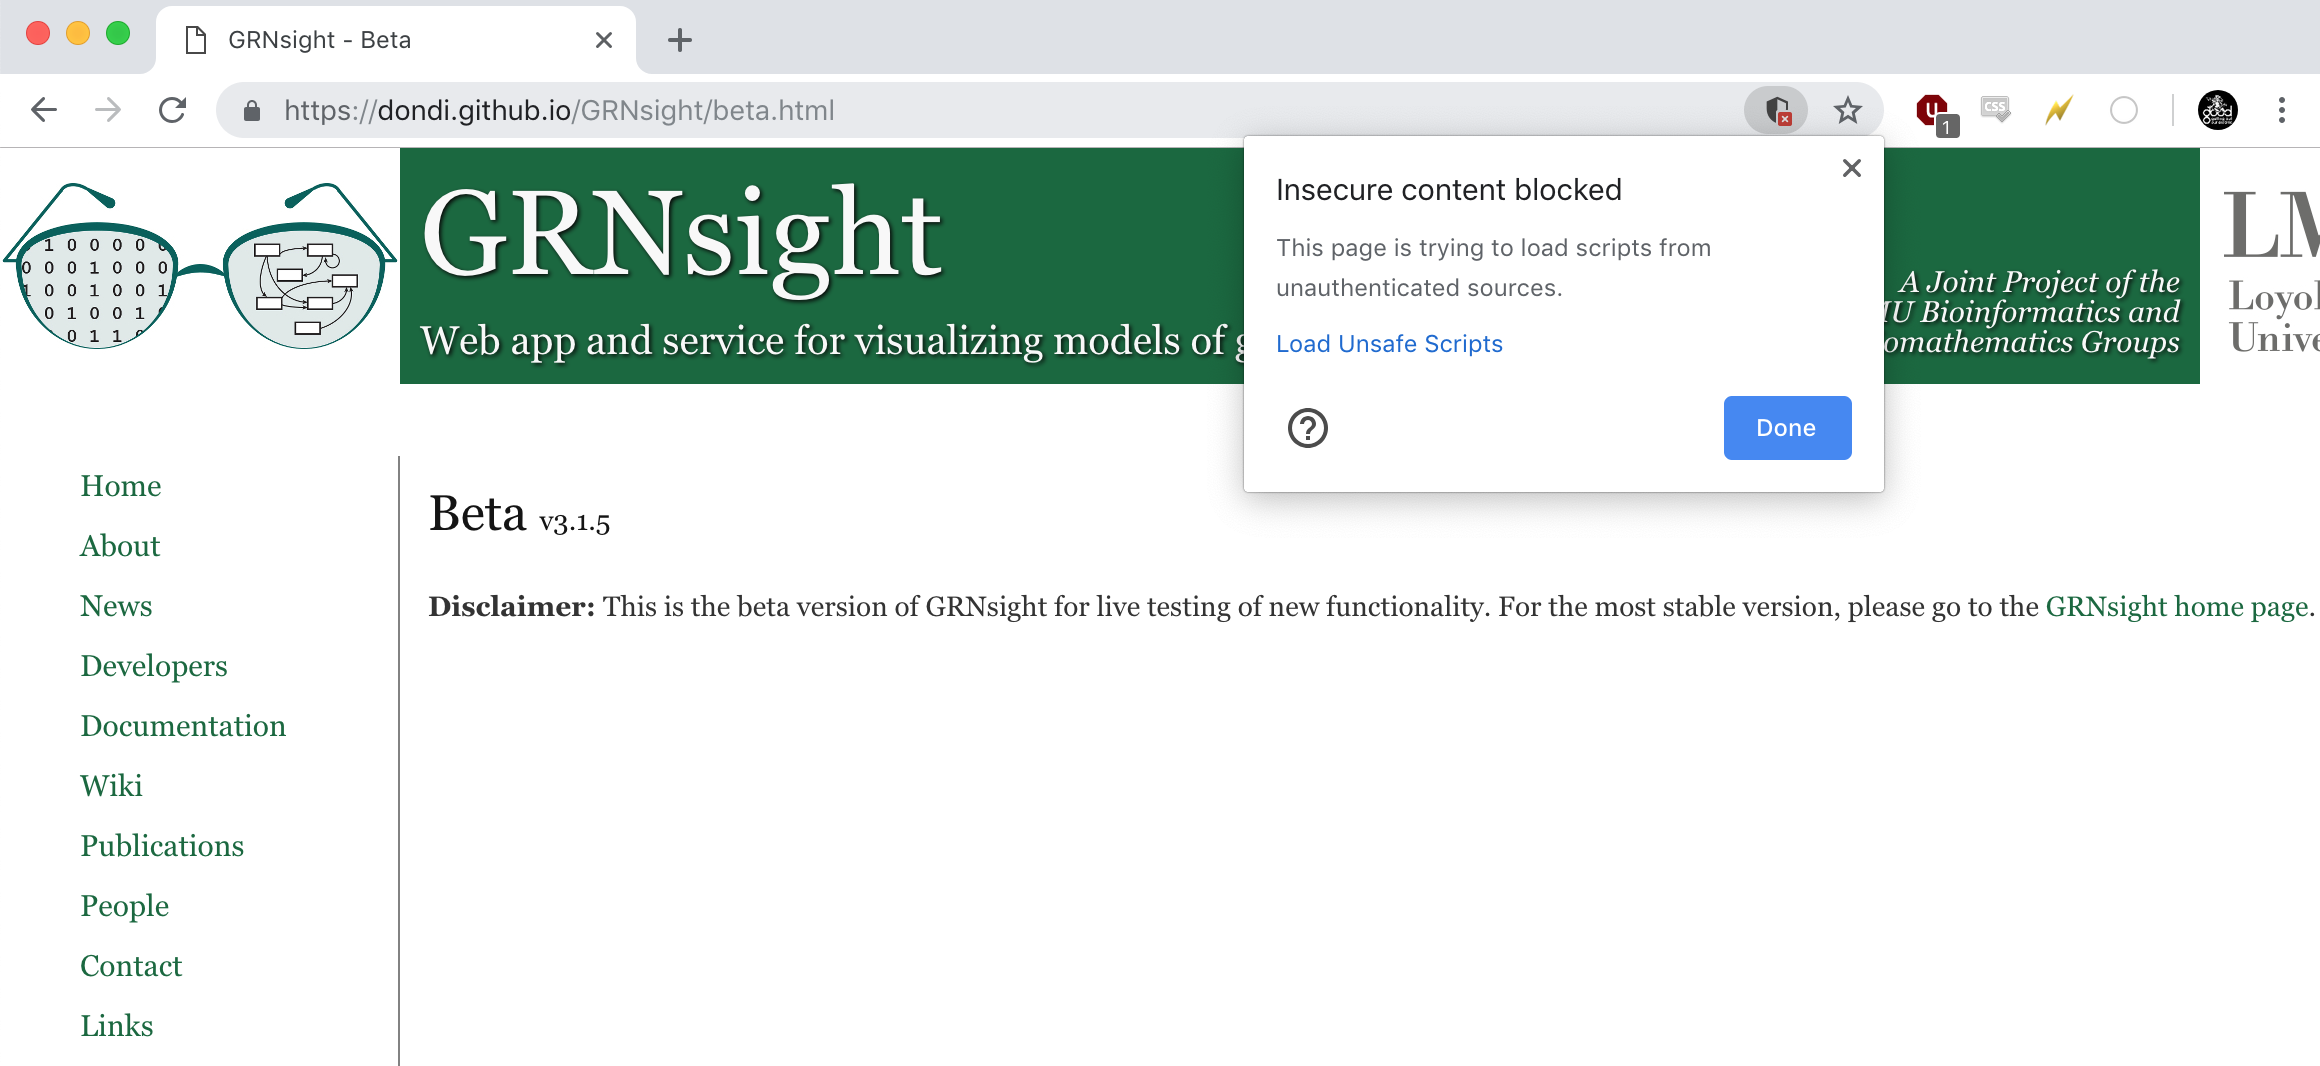 Both Google Chrome and Safari have begun to block GRNsight's